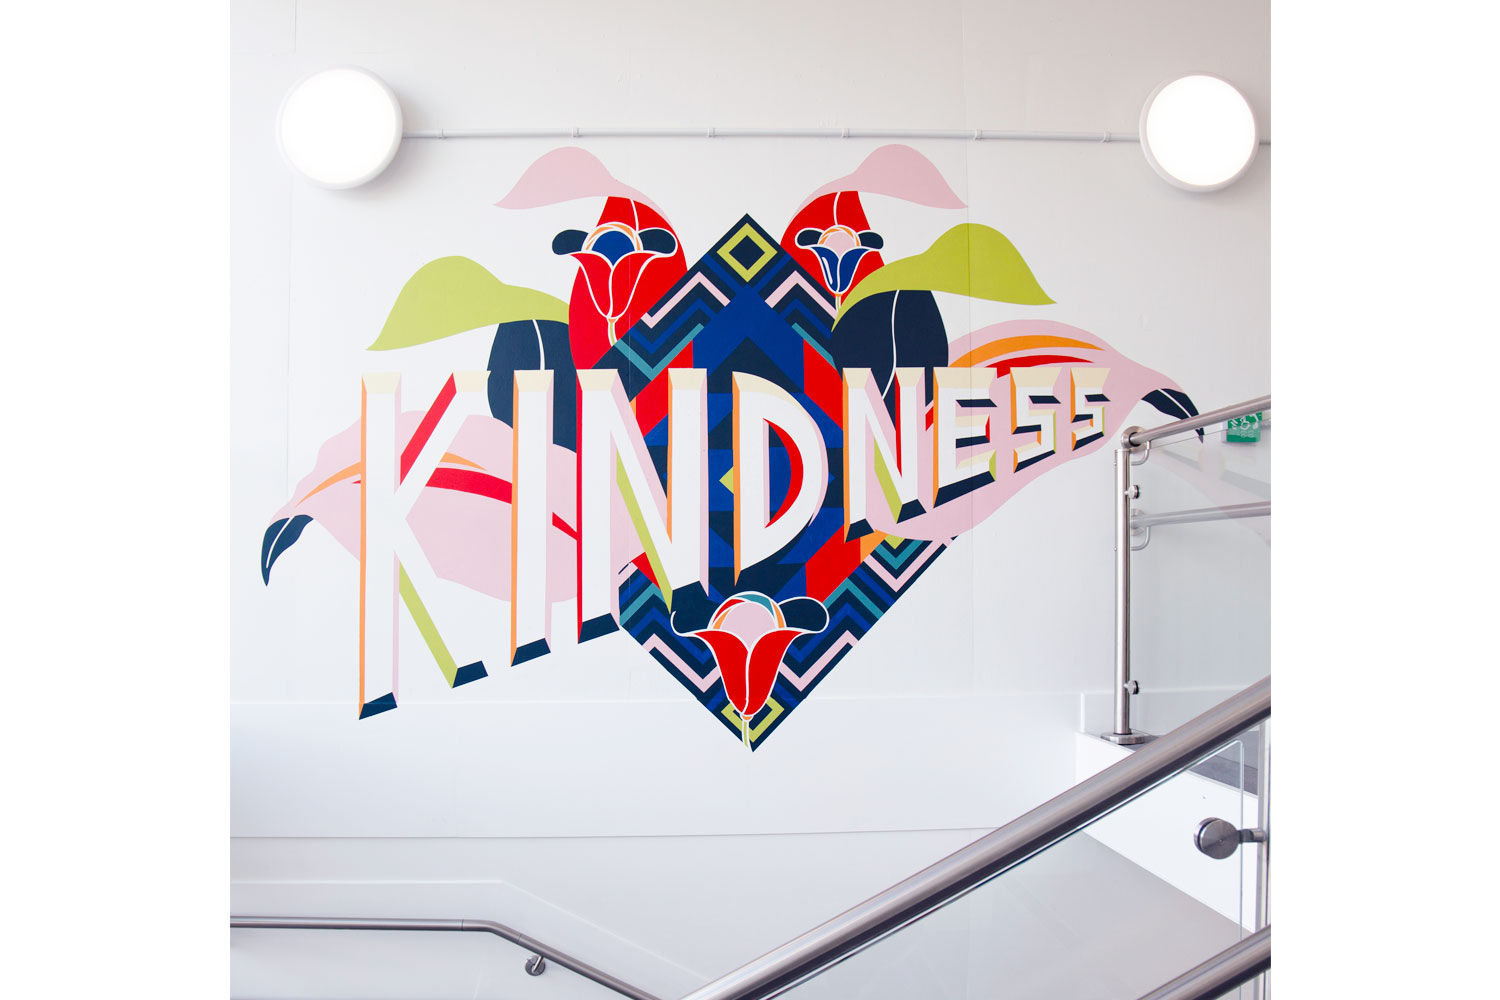 wingfield-kindness-web.jpg